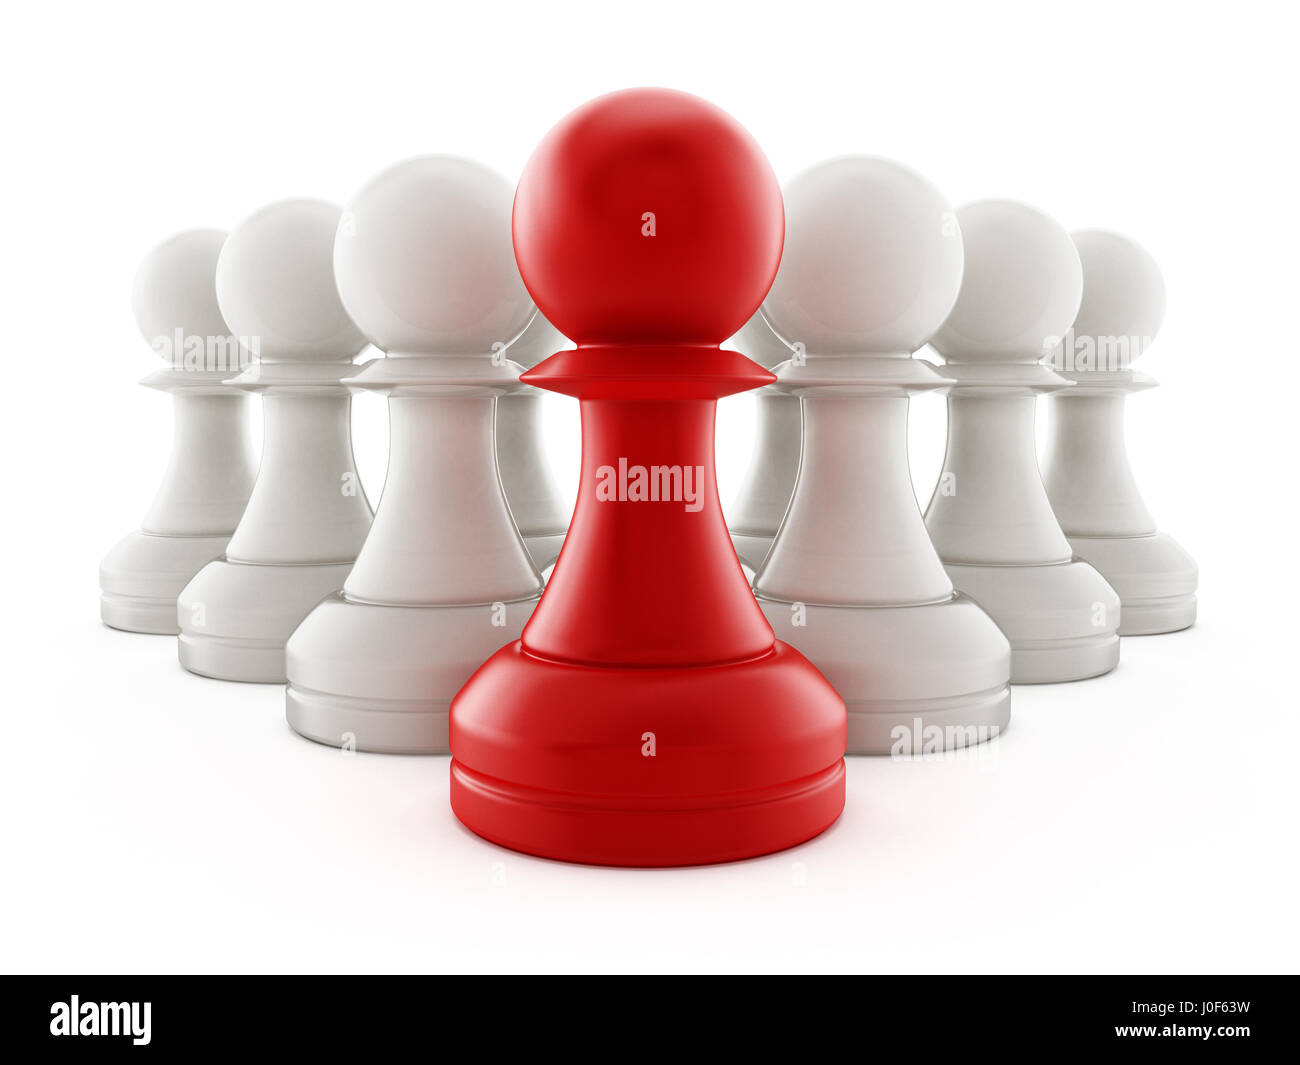 Red chess pawn standing ahead of white pawns. 3D illustration. - Stock Image